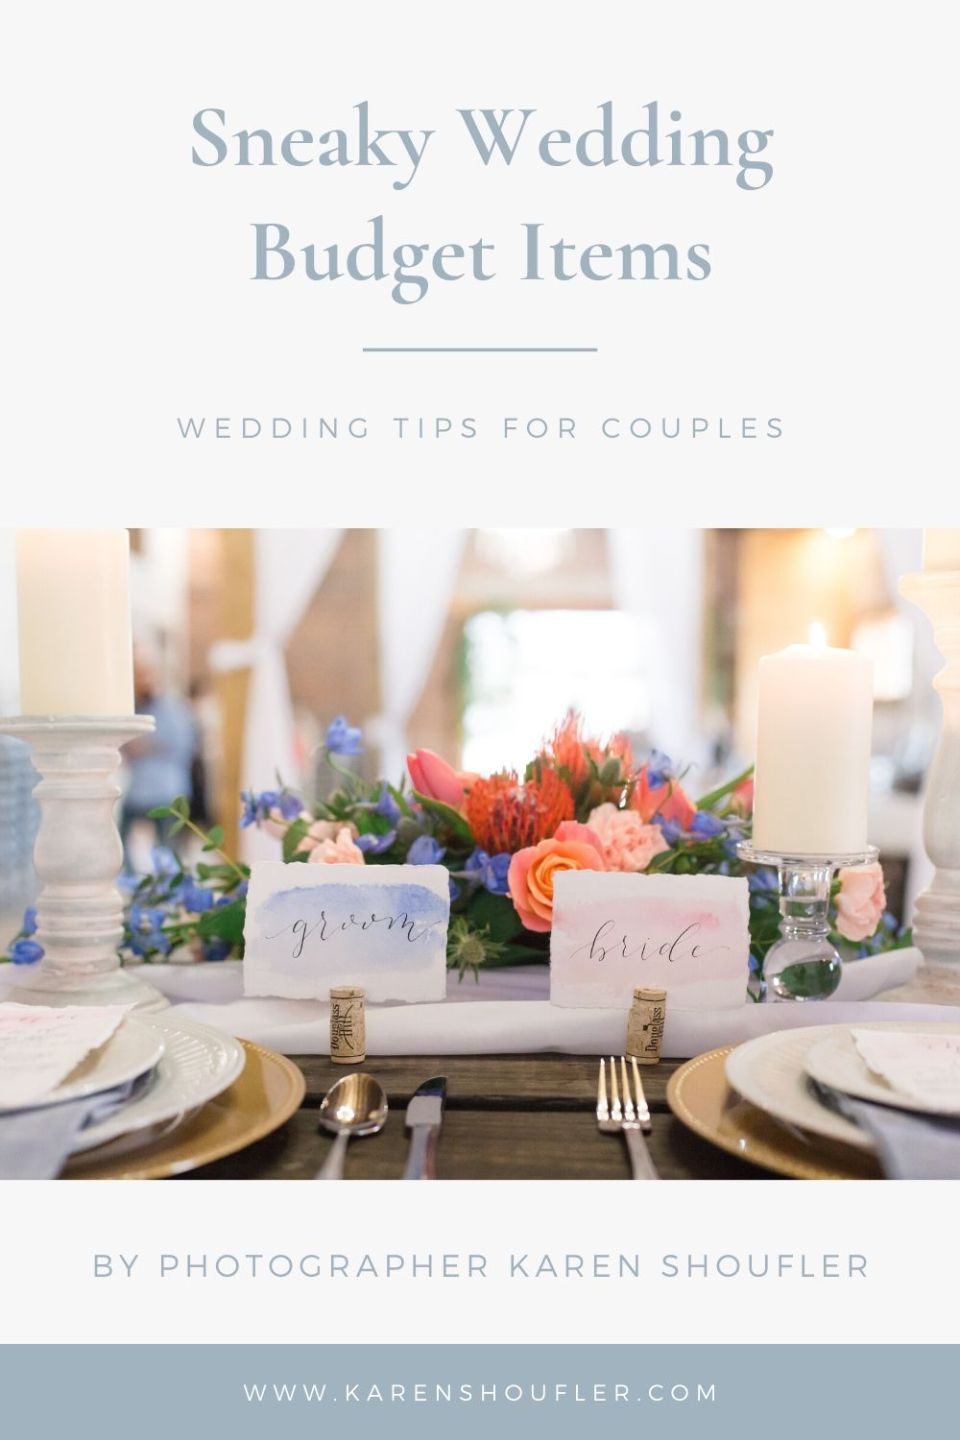 Sneaky Wedding Items to Add to Budget